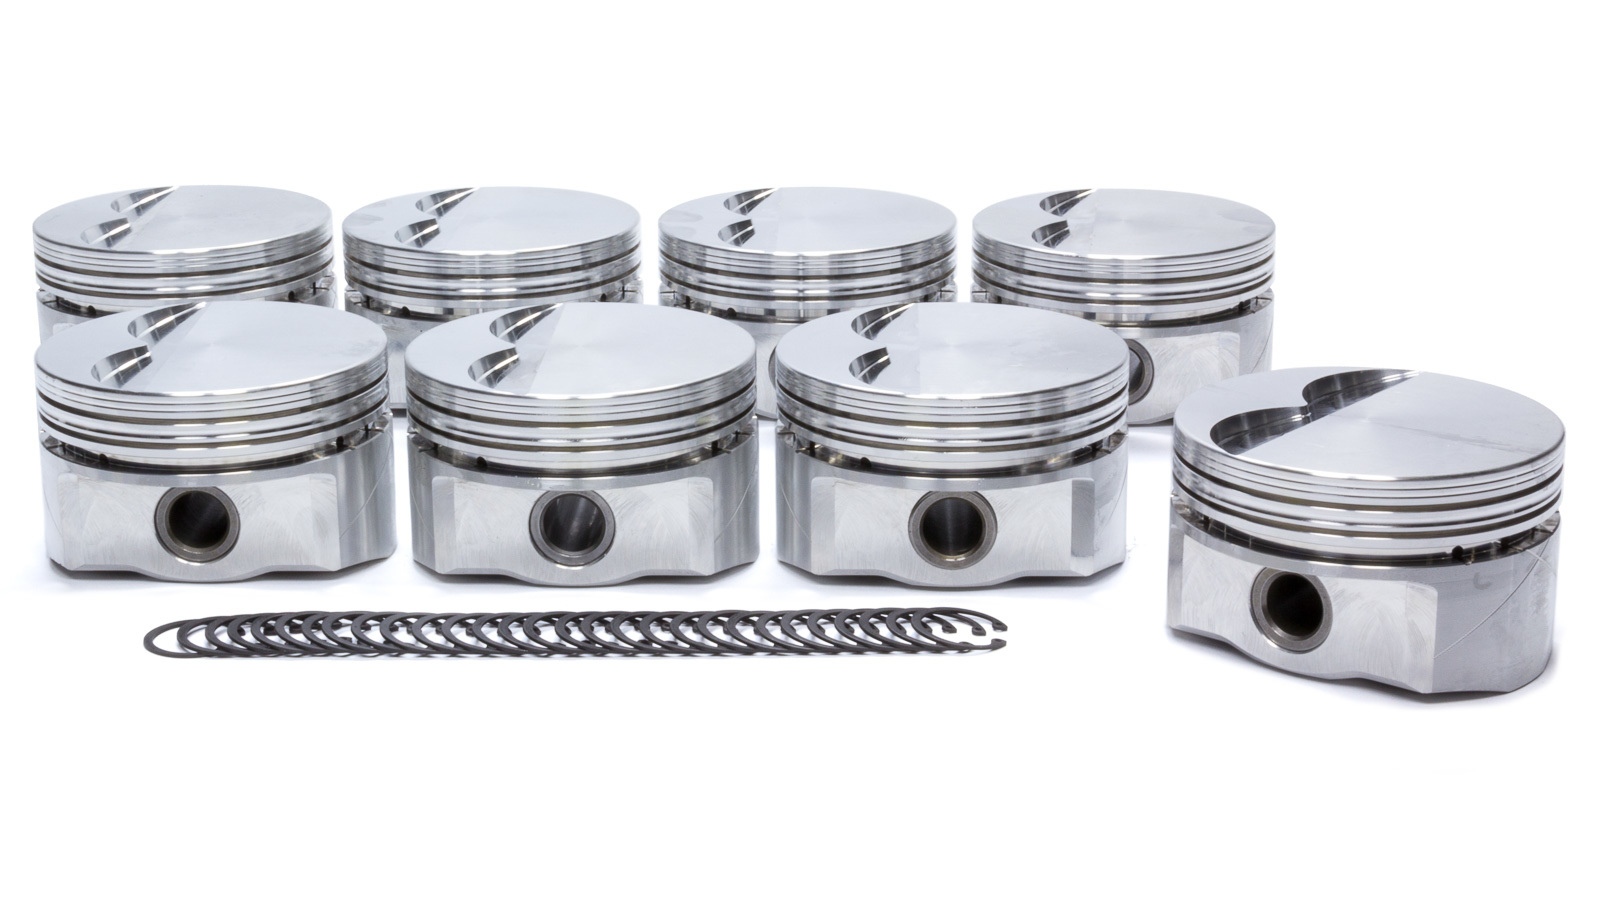 DSS Racing 6100CX-4100 Piston, GSX Series, Forged, 4.100 in Bore, 1/16 x 1/16 x 3/16 in Ring Grooves, Minus 5.0 cc, Pontiac V8, Set of 8